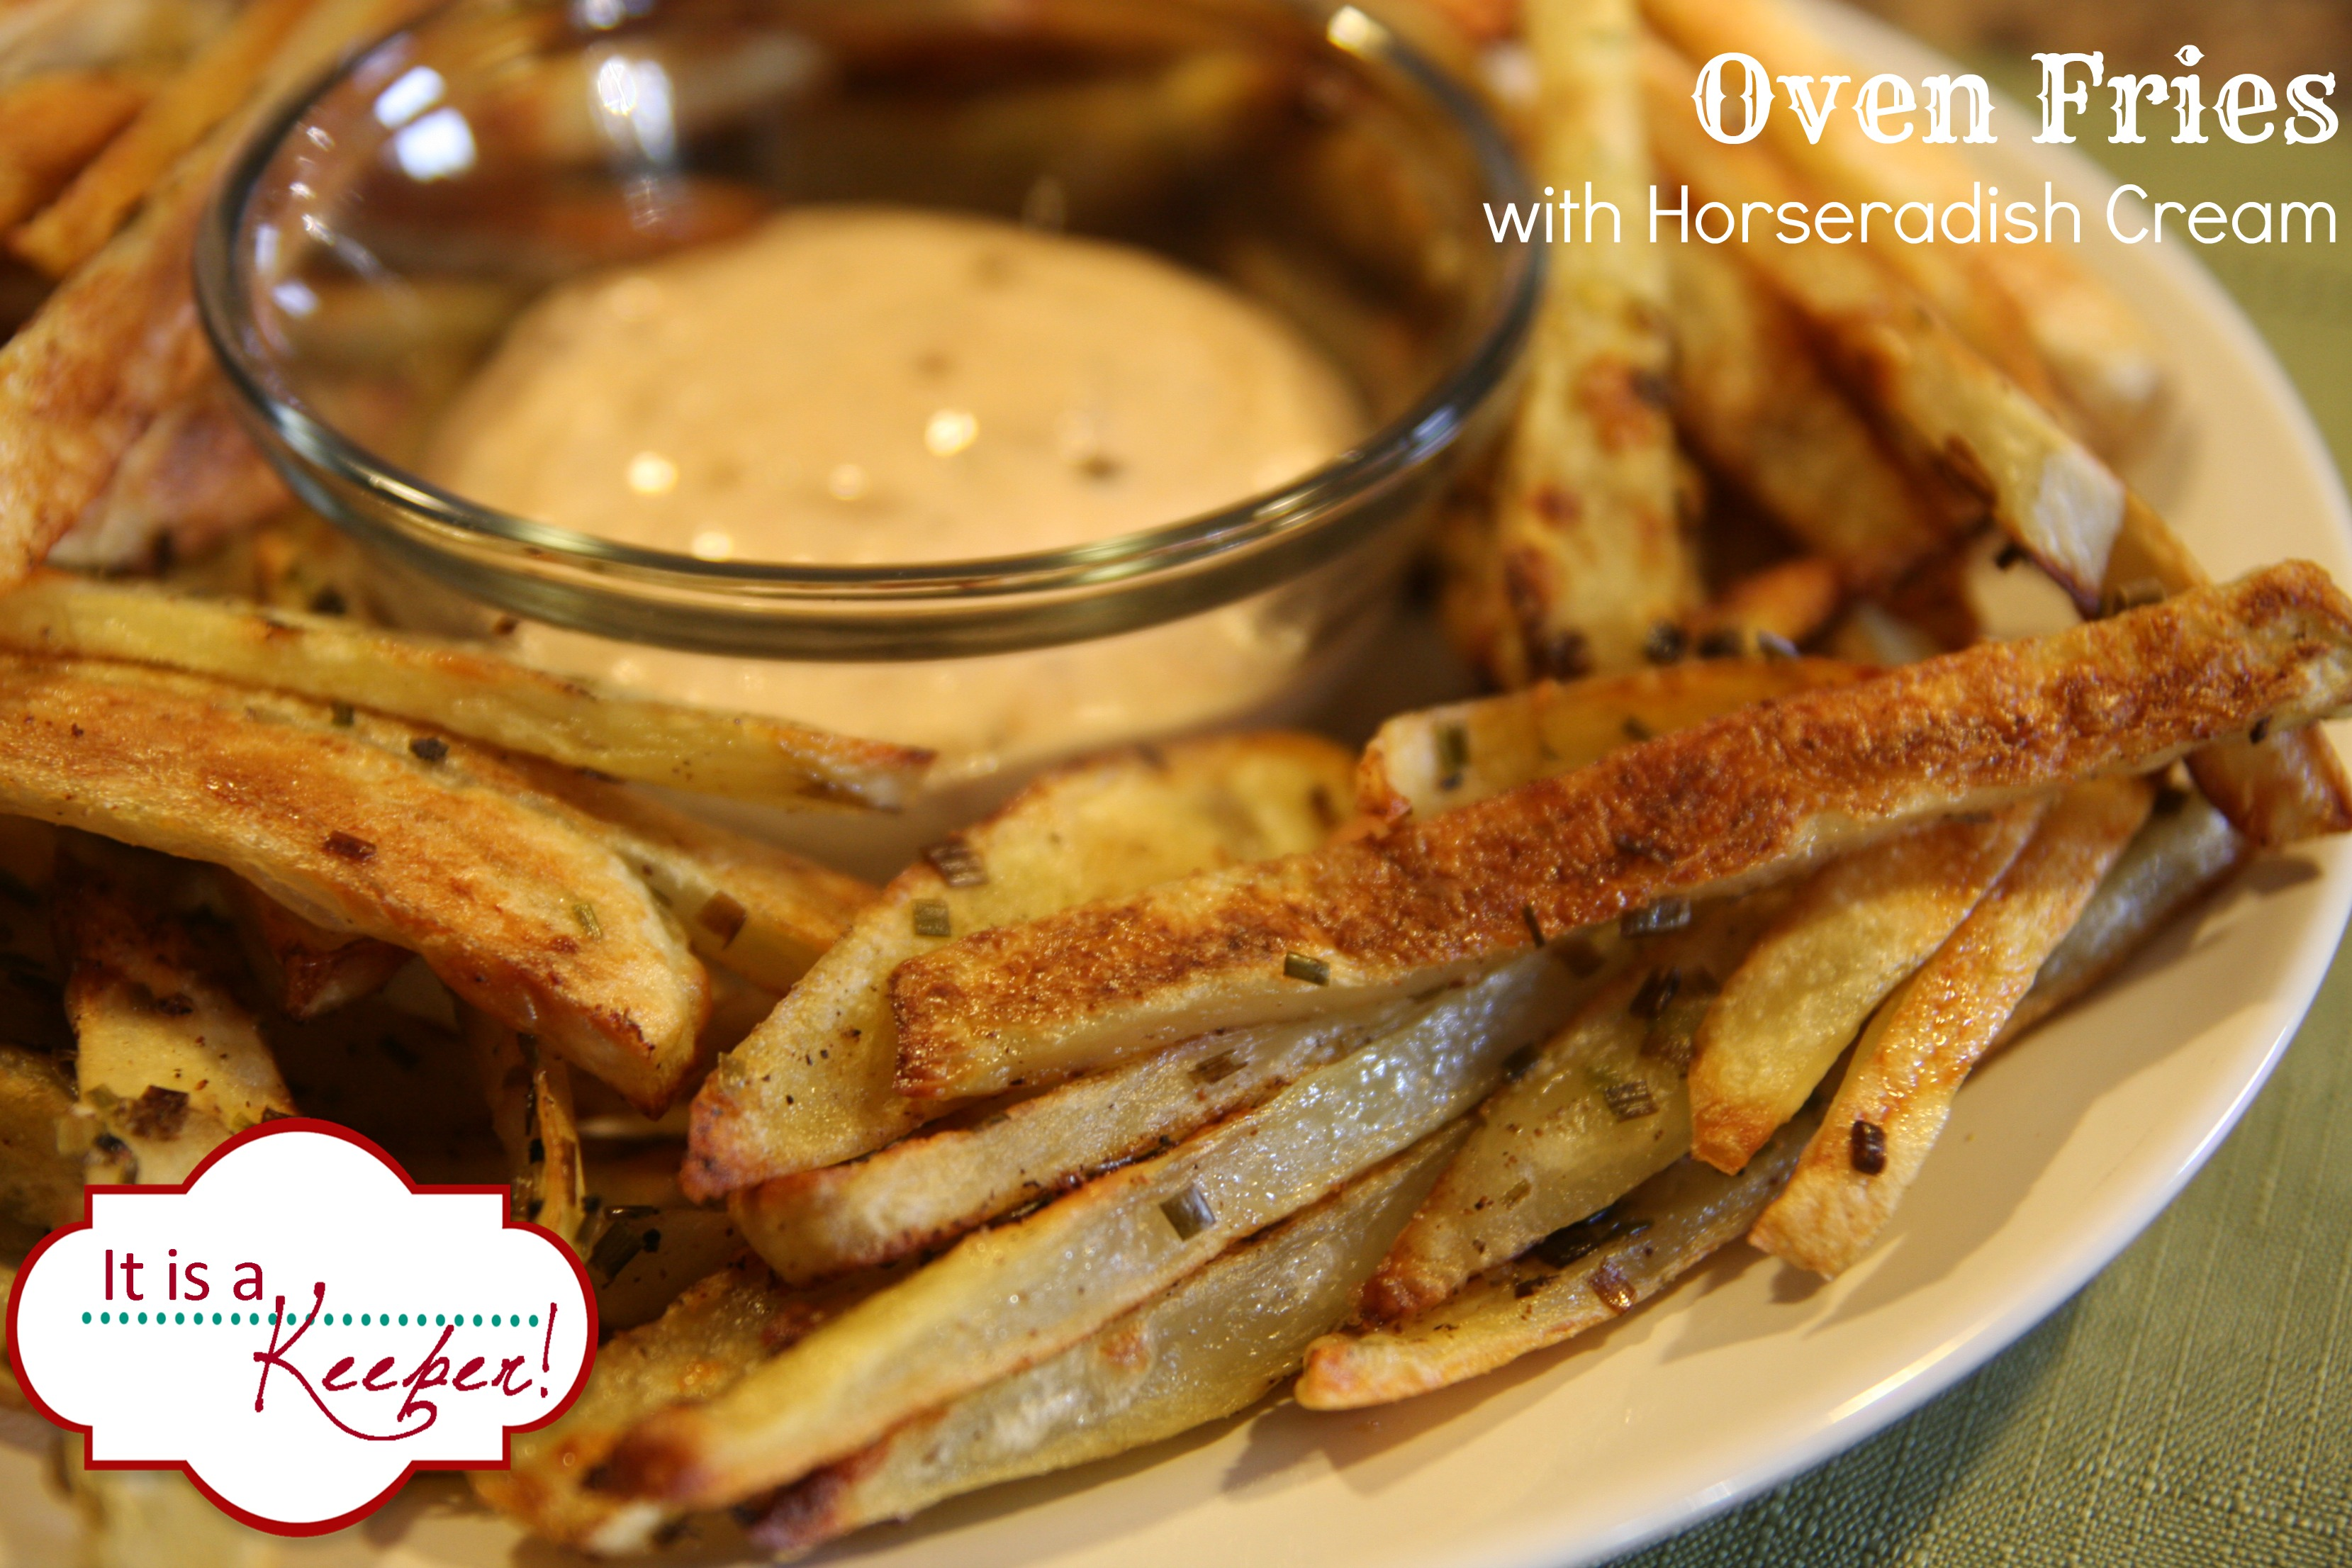 Oven Fries with Horseradish Cream